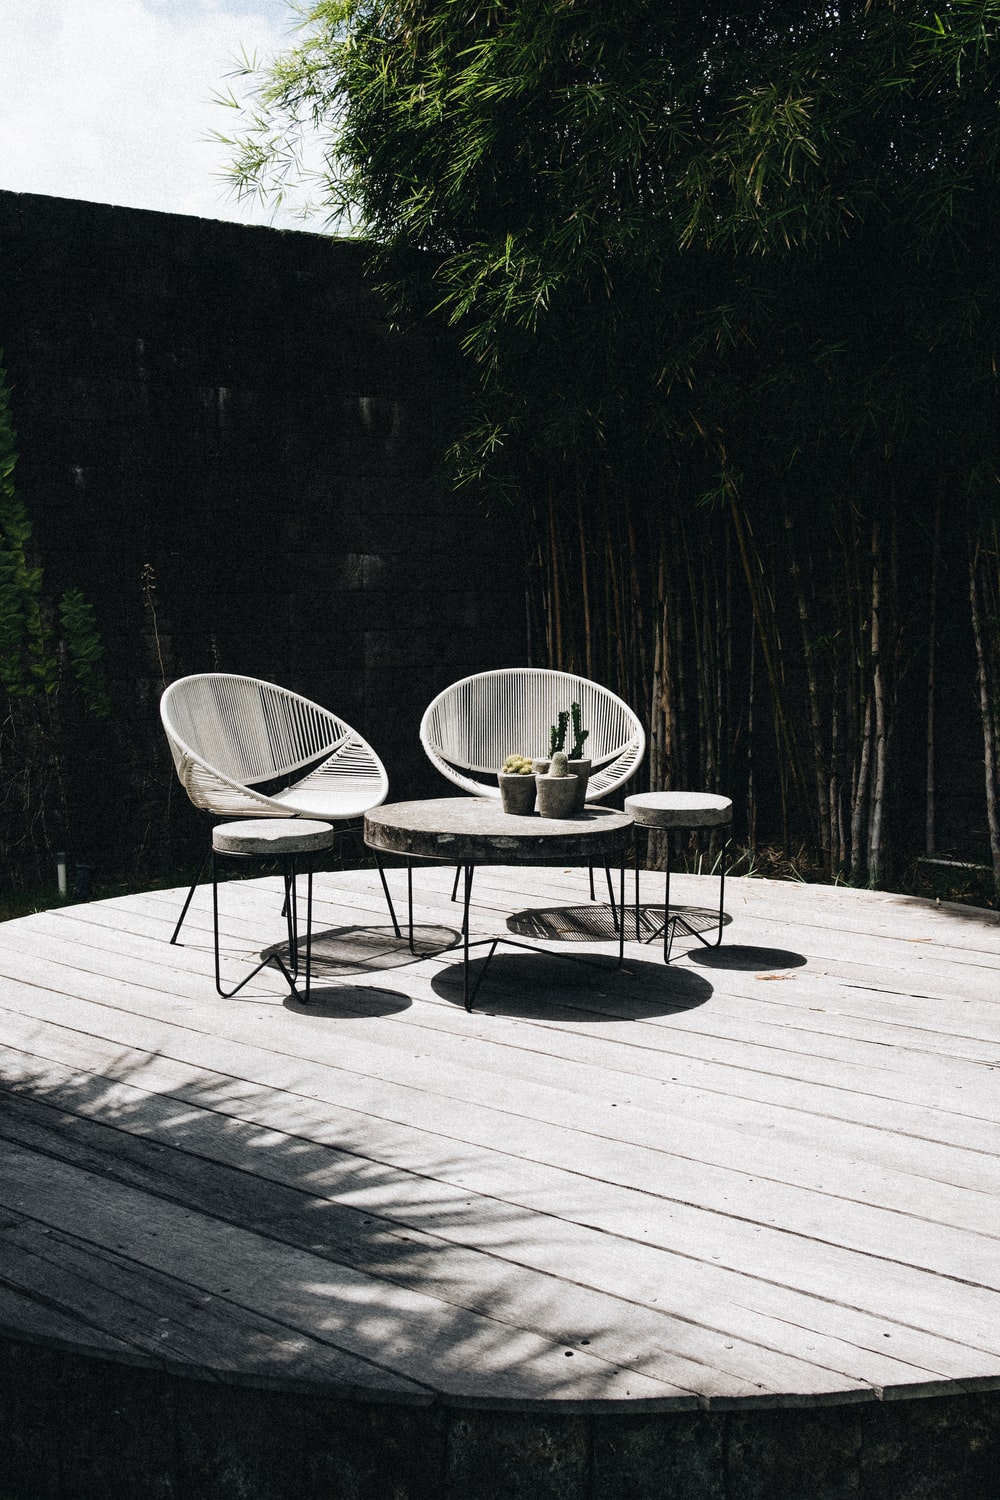 gray table with chair near trees